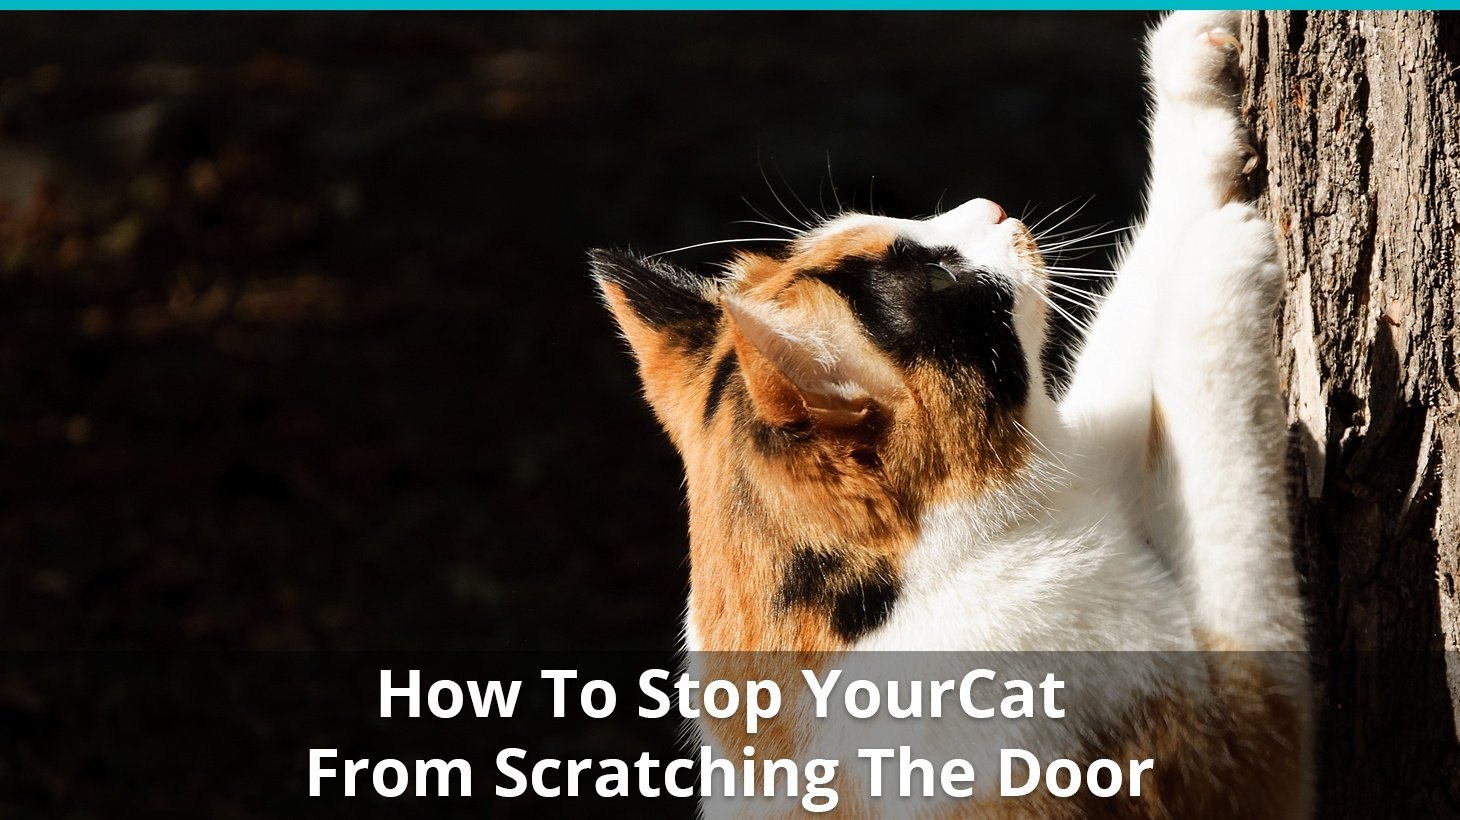 How To Stop Your Cat From Scratching The Door